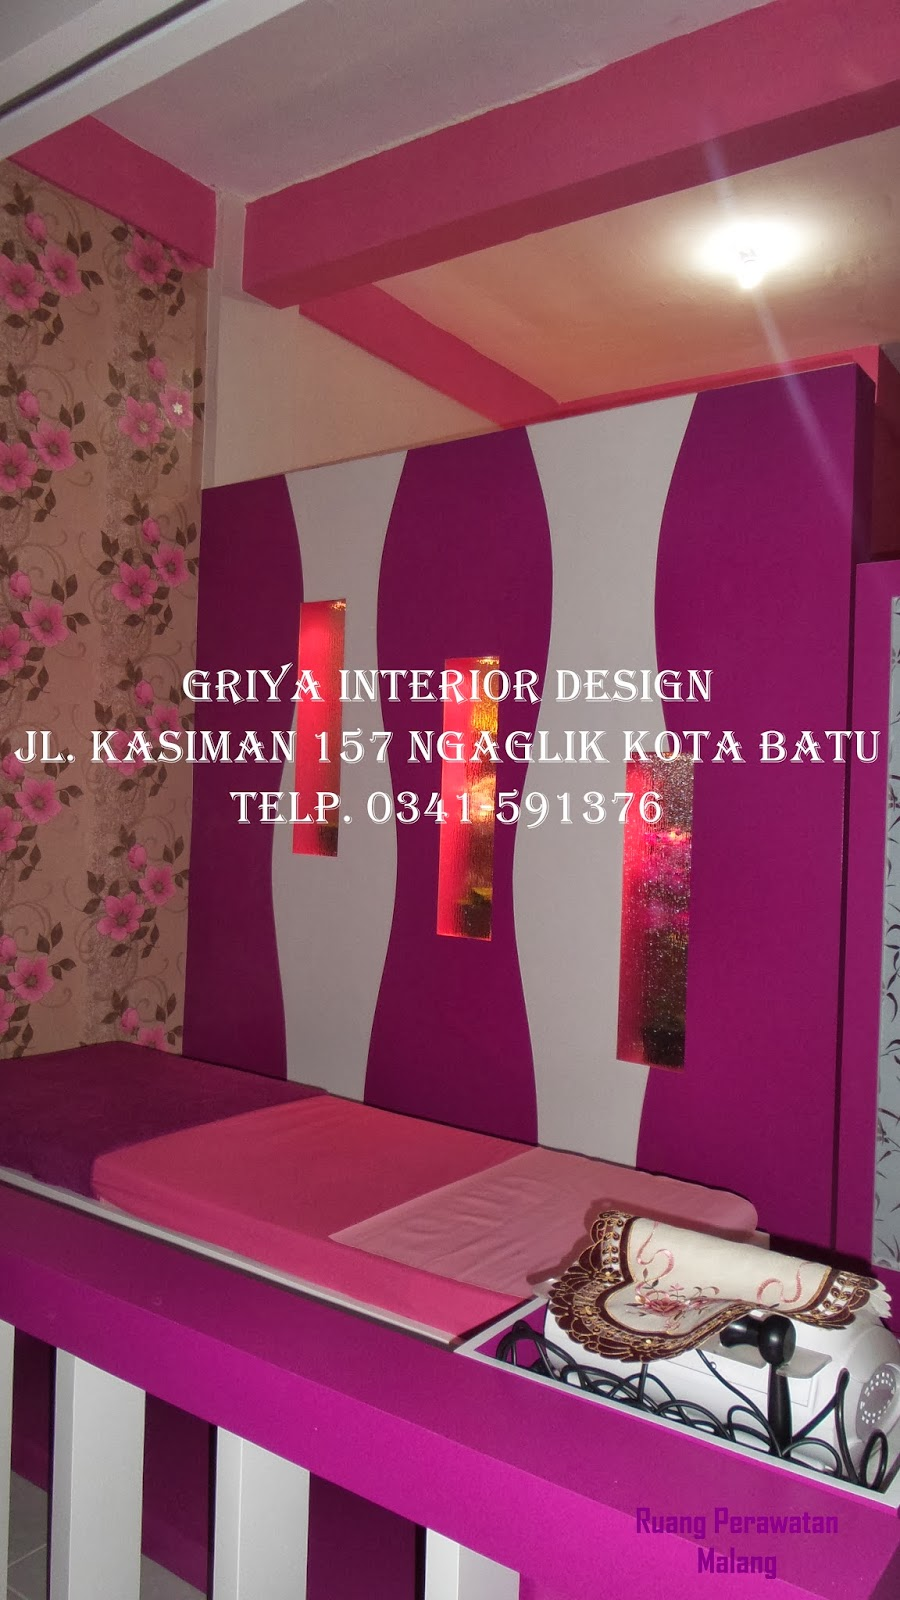 Design Salon Kecantikan | Joy Studio Design Gallery - Best Design